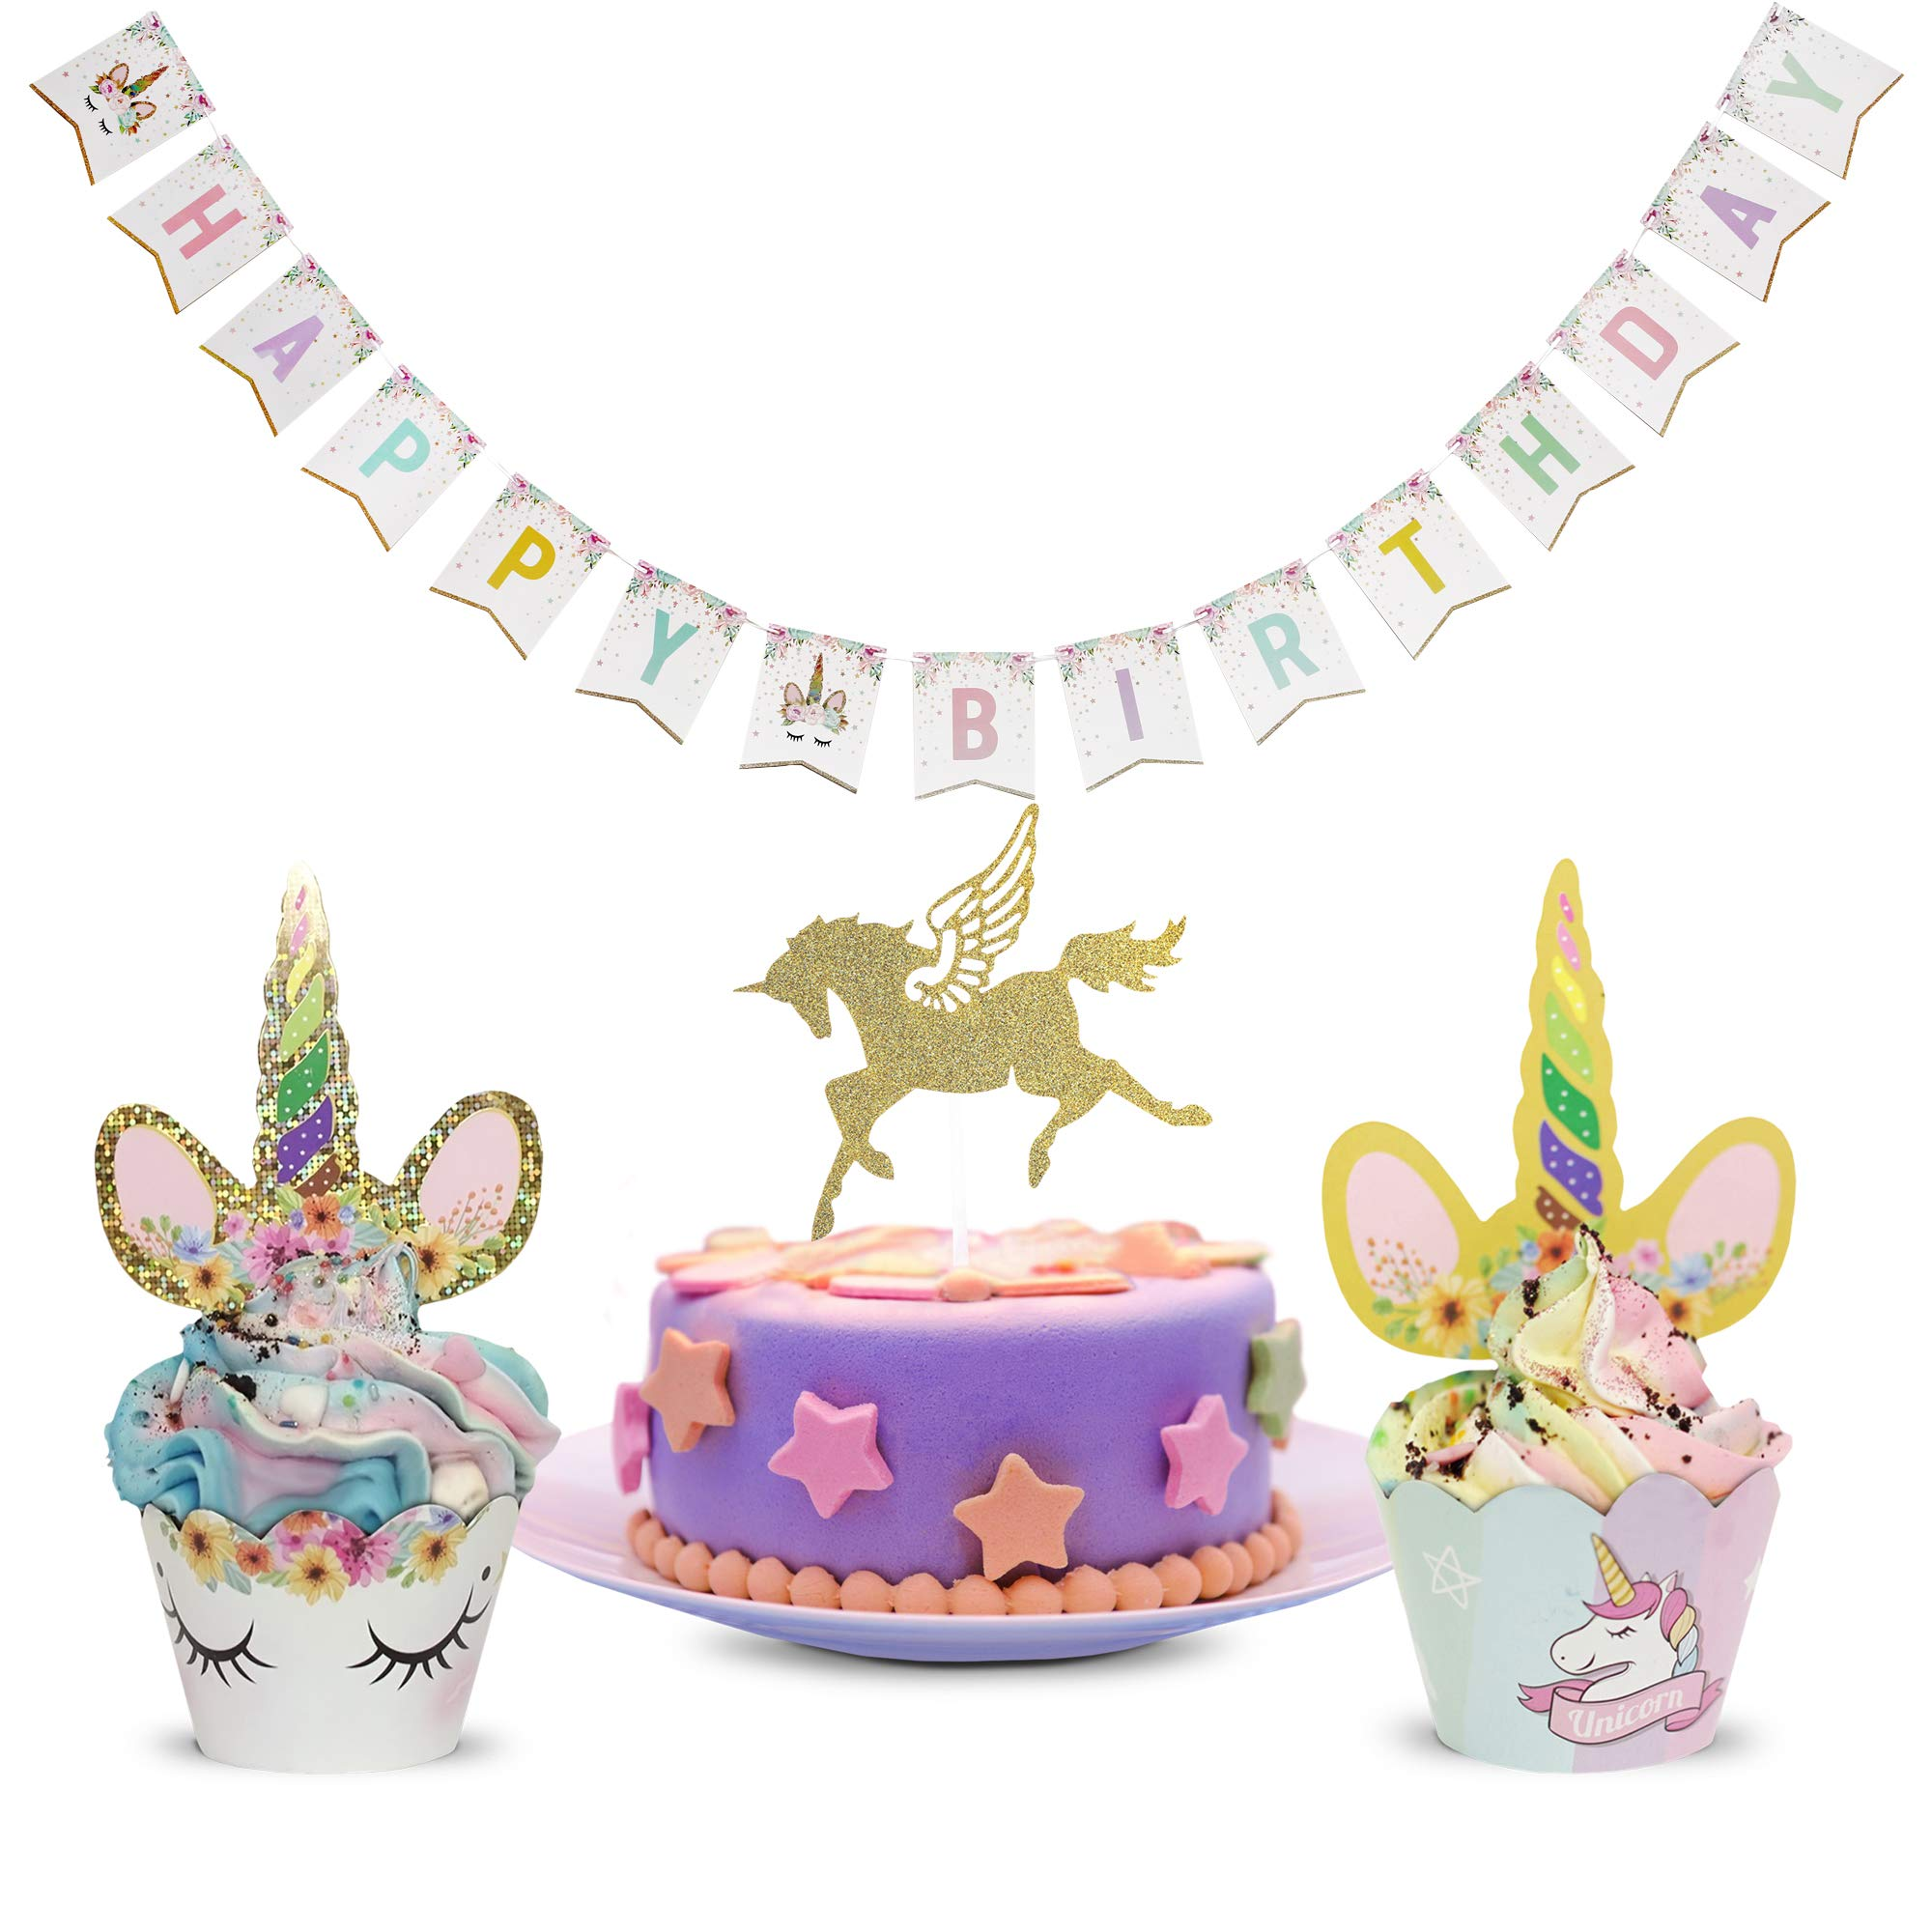 Unicorn Cake Toppers and Wrappers | Rainbow Party Set for Birthday, Baby Shower, Wedding | Double Sided Wrappers, Cupcake Toppers and Birthday Banner – Complete Set of 73 Pieces